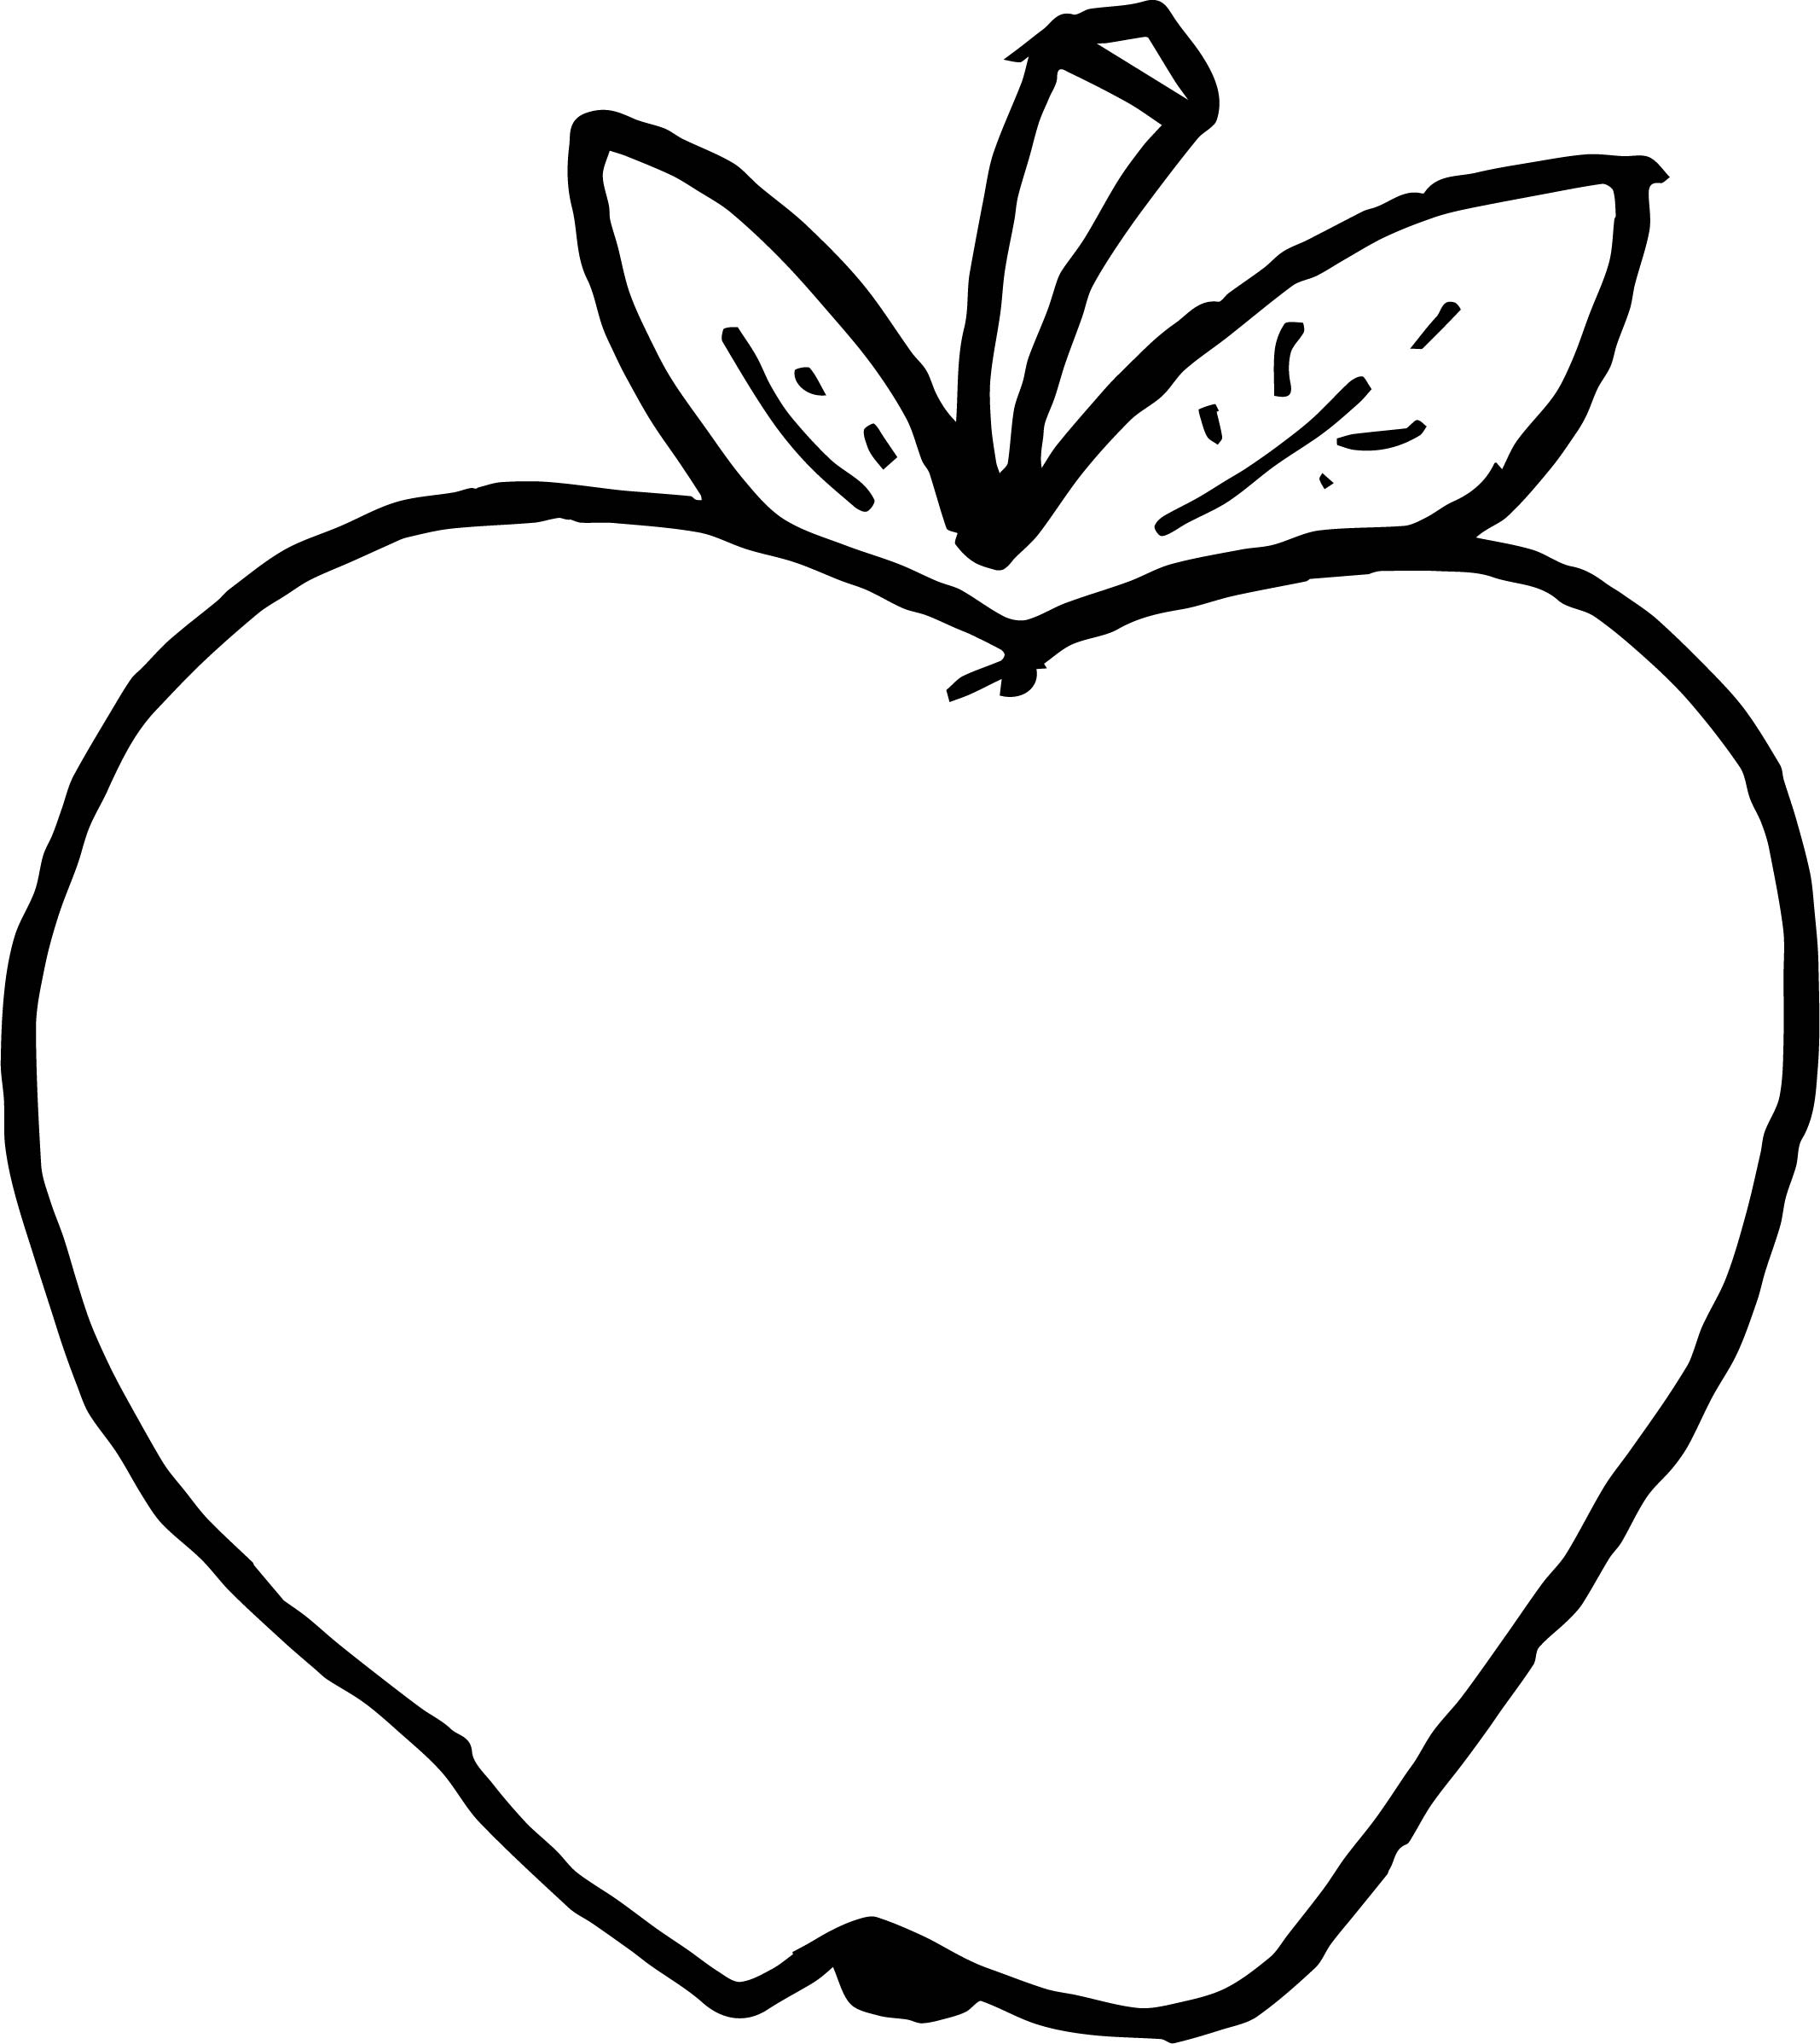 Apple Image Free Food Coloring Page